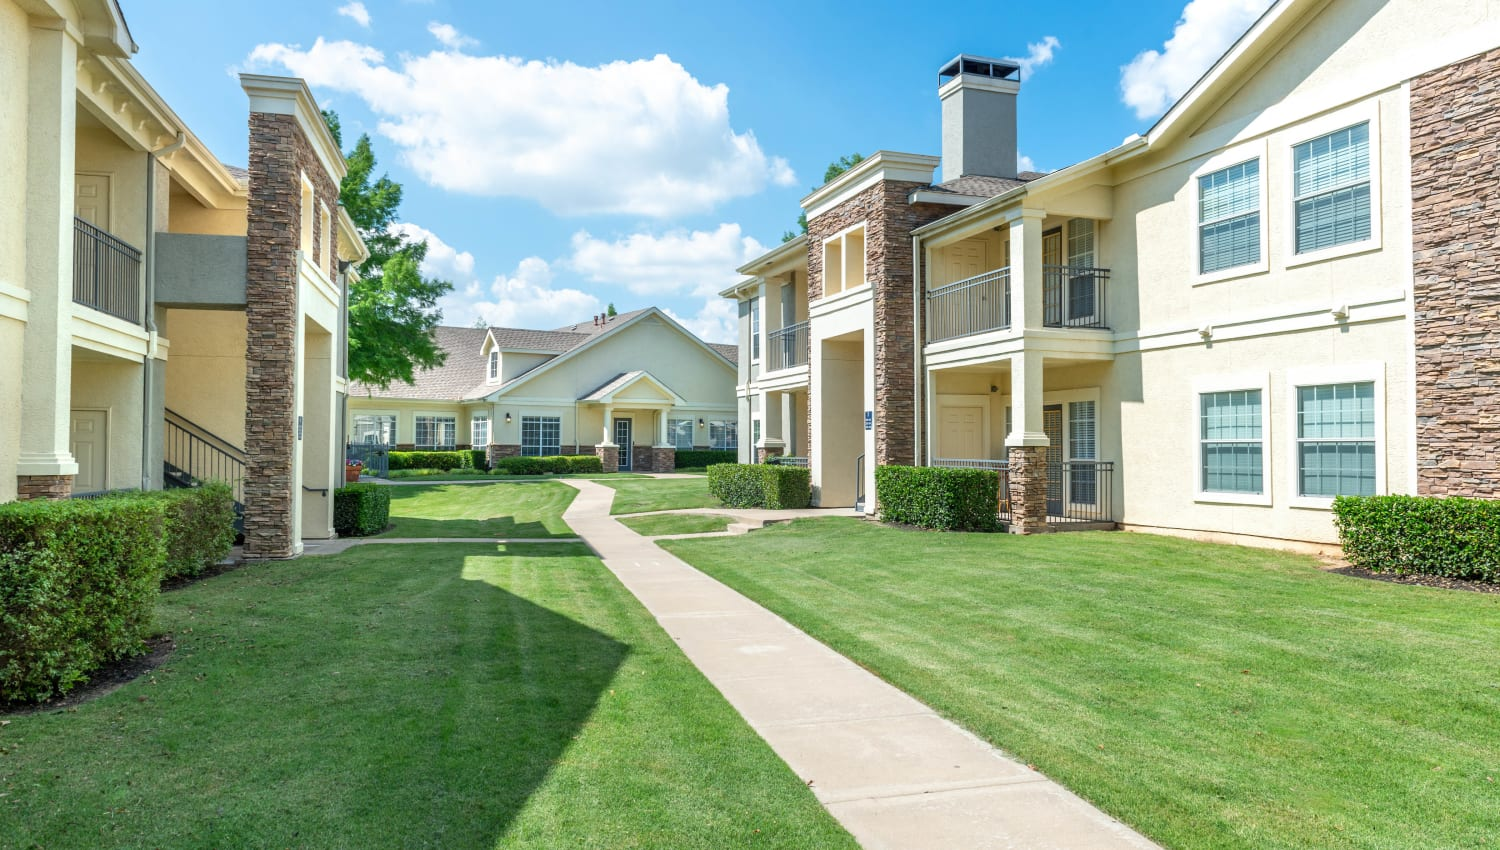 Green grass and manicured shrubberies between resident buildings at Olympus Stone Glen in Keller, Texas